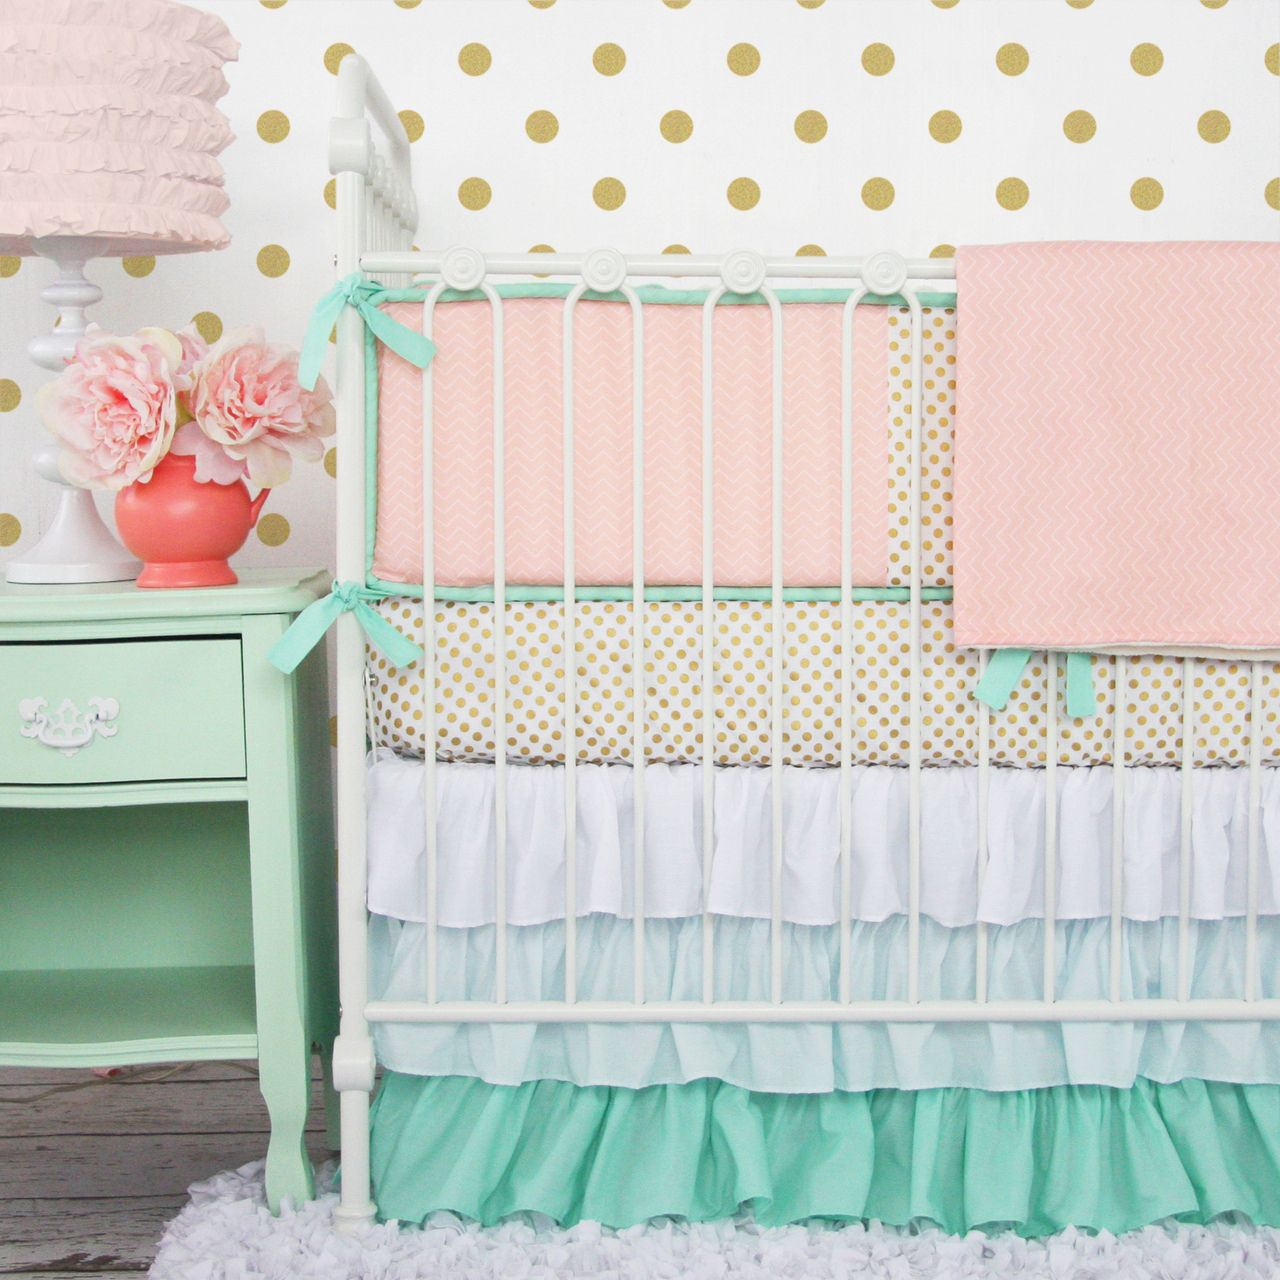 crib in bath linen polka bedroom beyond intended alexa girl pink white set sets bedding striped dot grey and for baby bed comforter sheets girls